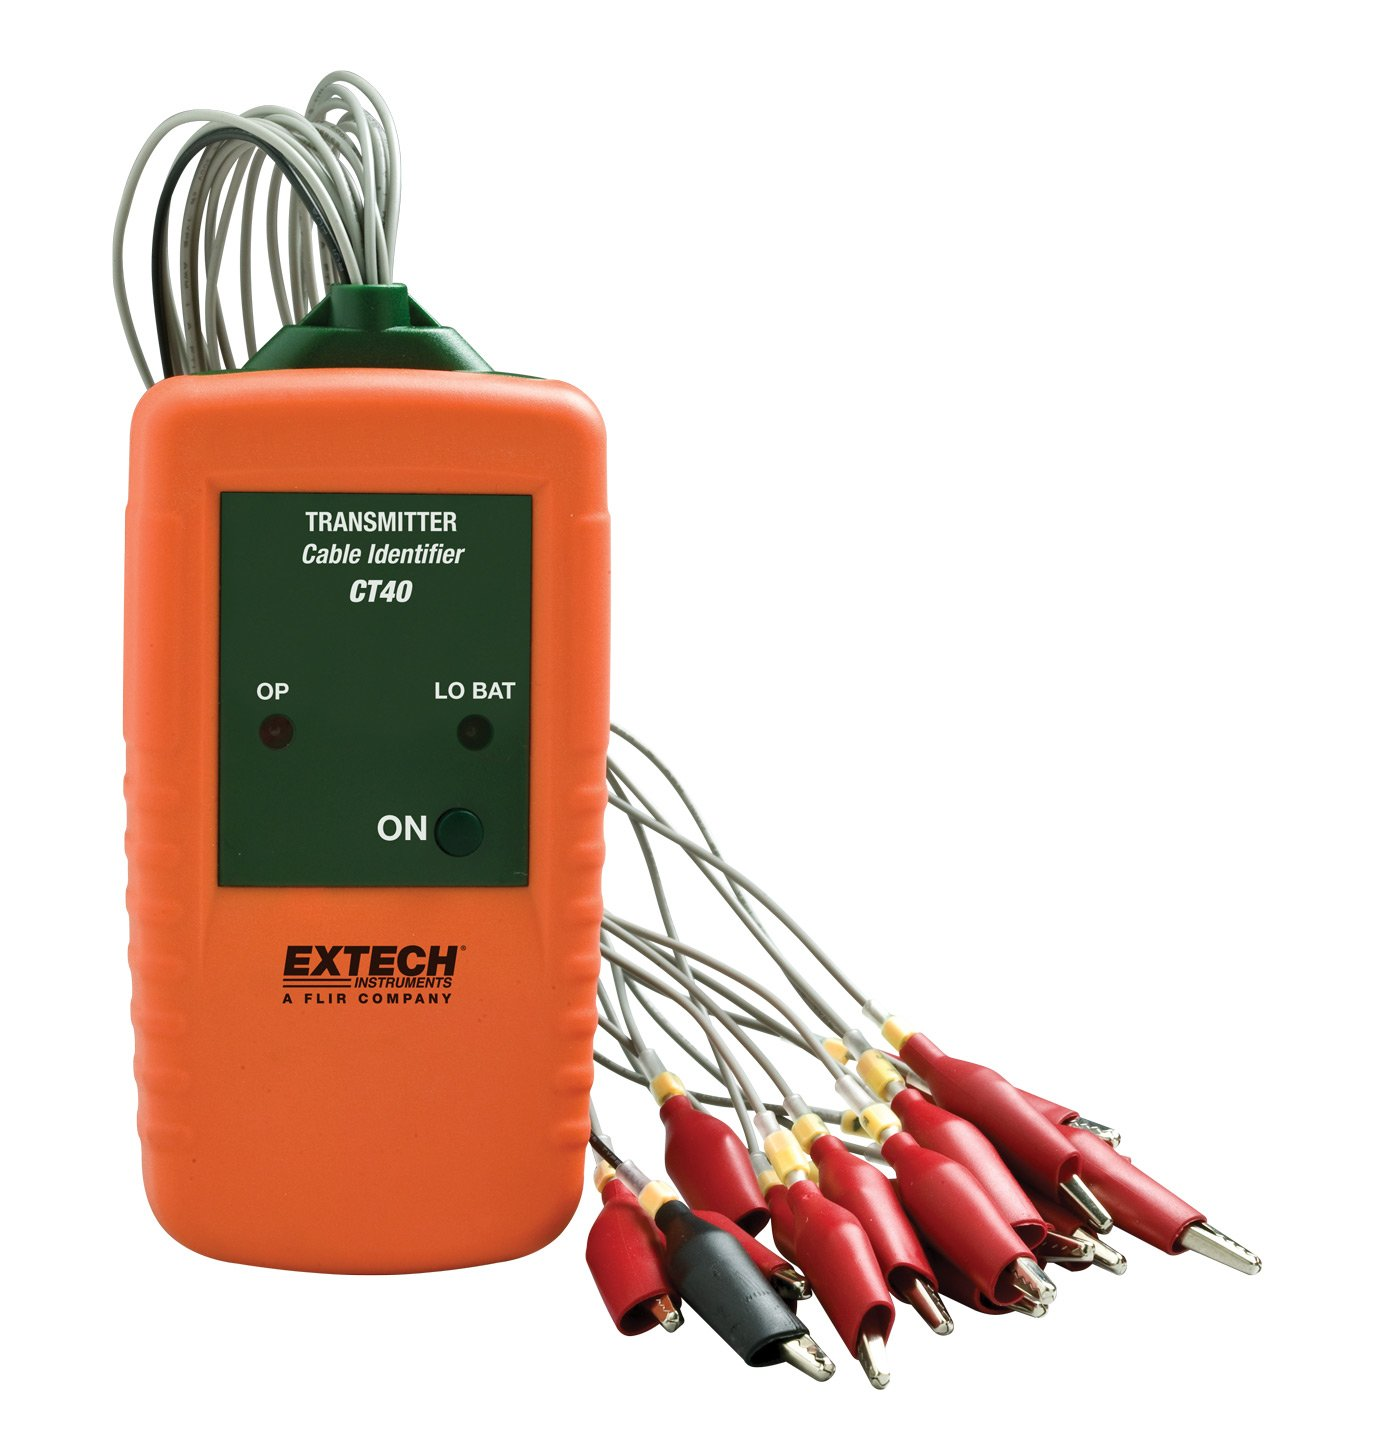 Extech Ct40 Cable Identifier Tester Kit Electrical Testers Free Stock Photography Electric Meter Messy Installation